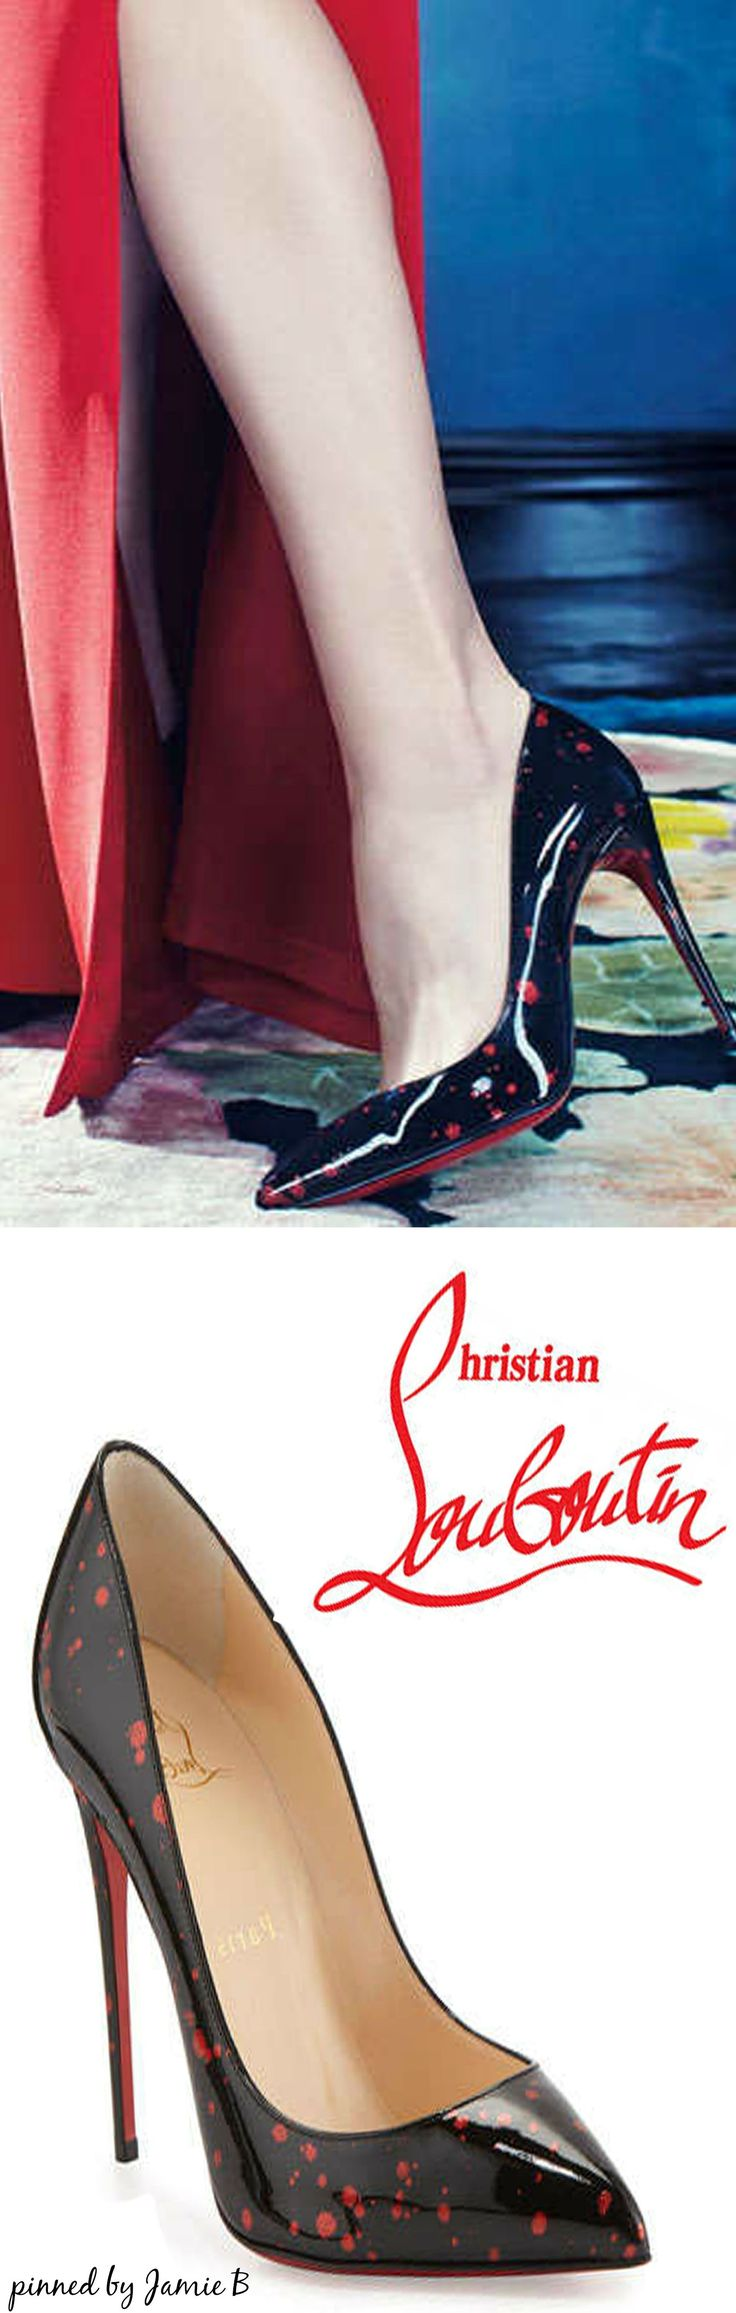 christian louboutin sale neiman marcus designer red bottom shoes christian louboutin